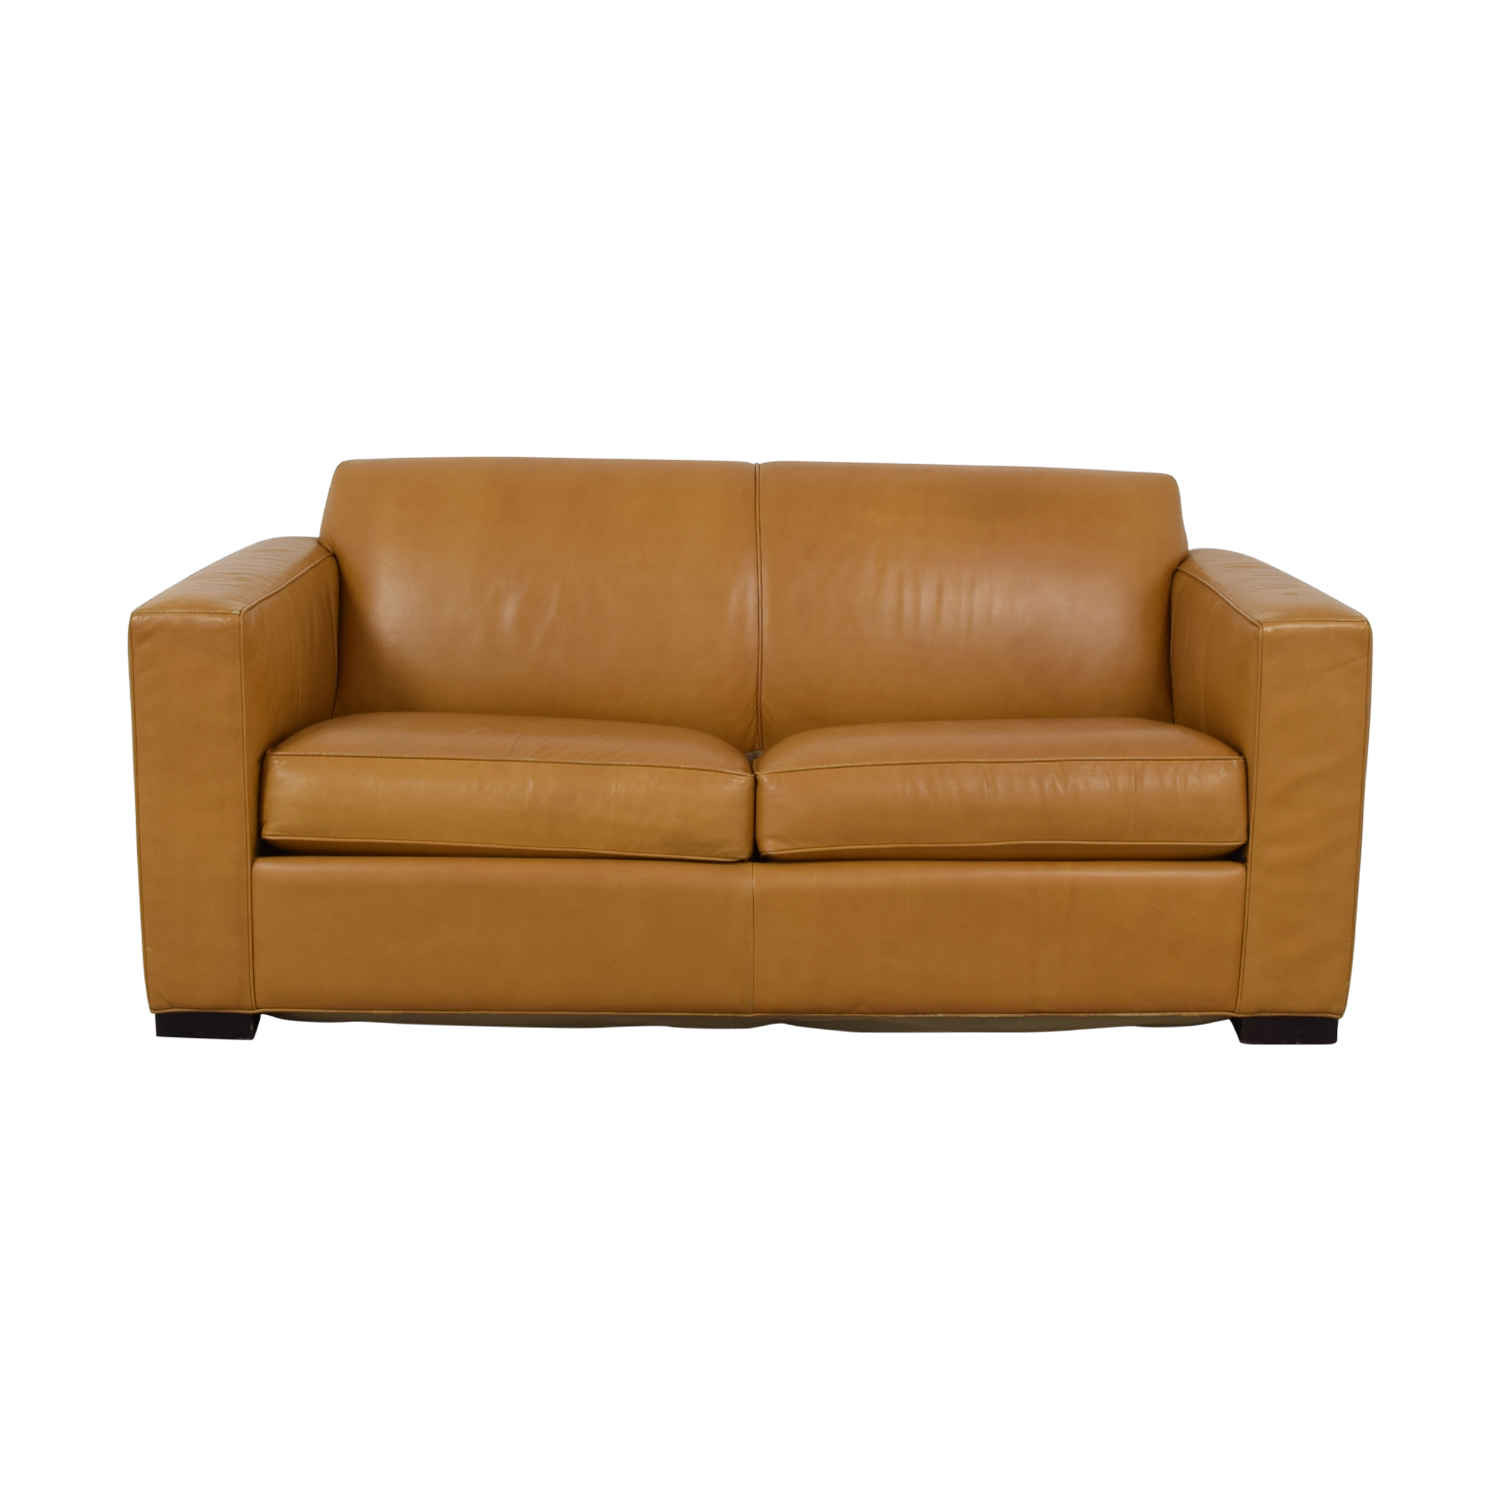 Leggett & Platt Leggett & Platt Full Sleeper Sofa coupon